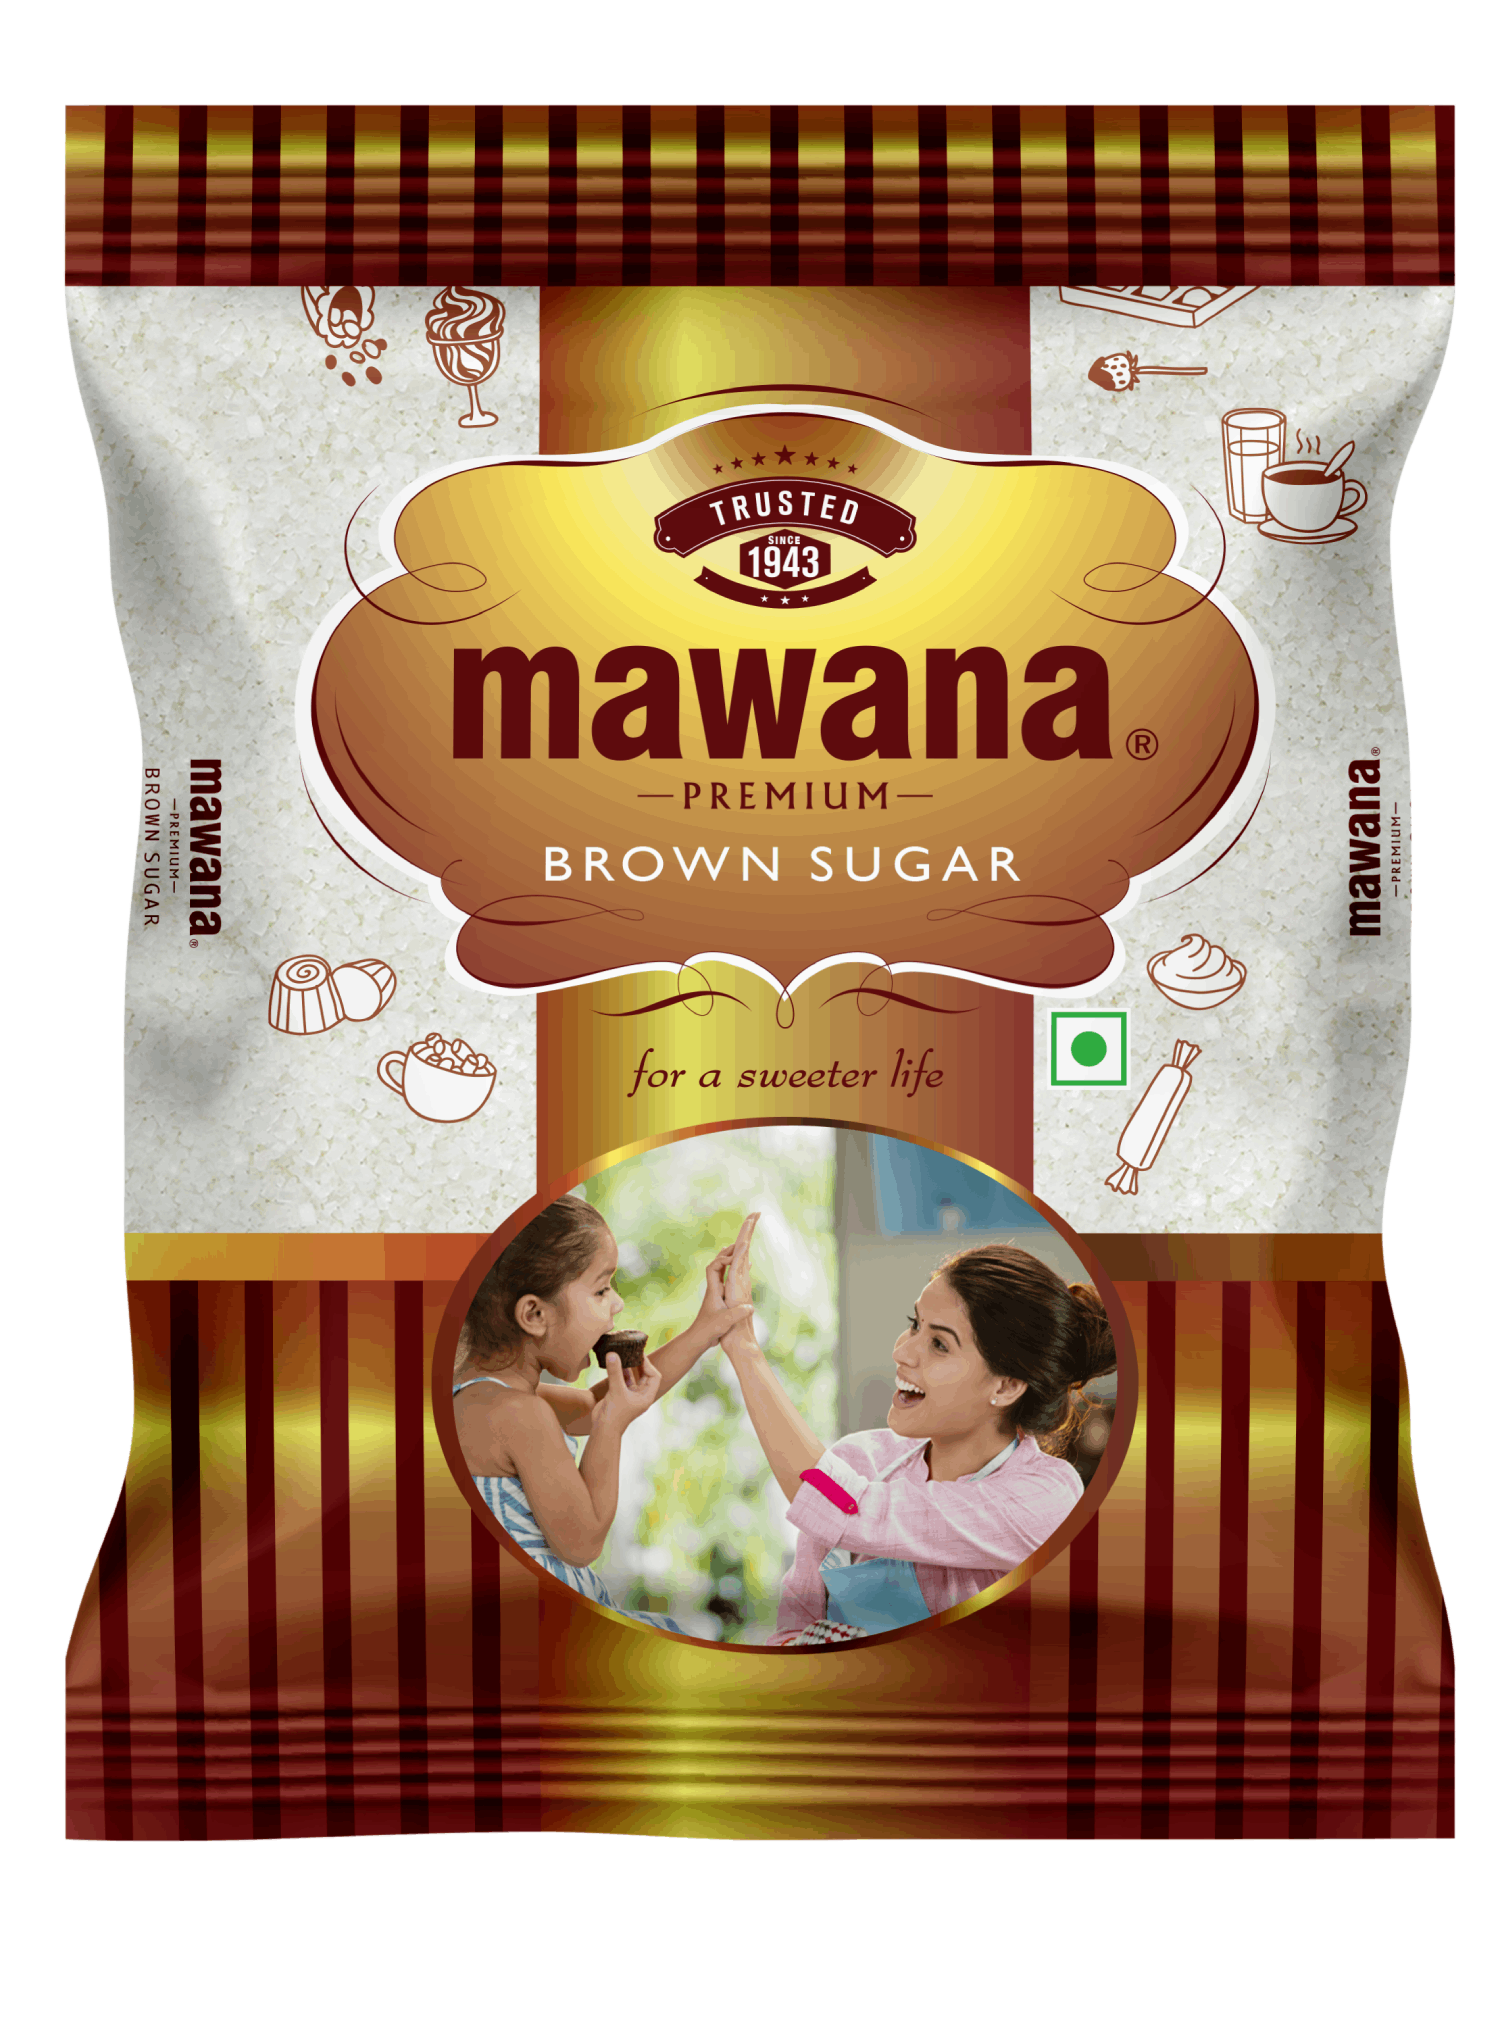 Mawana Premium Brown Sugar